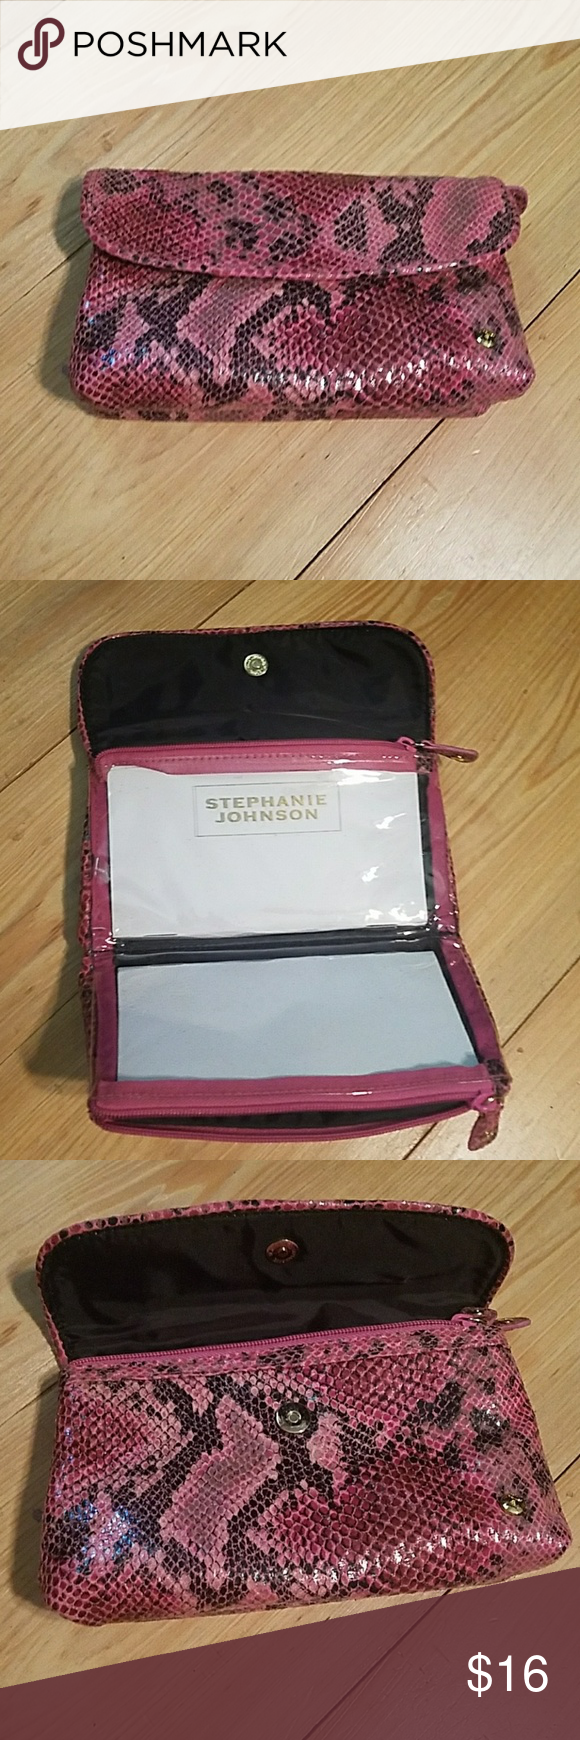 Stephanie Johnson Cosmetic Pouch Cosmetic bag in pink